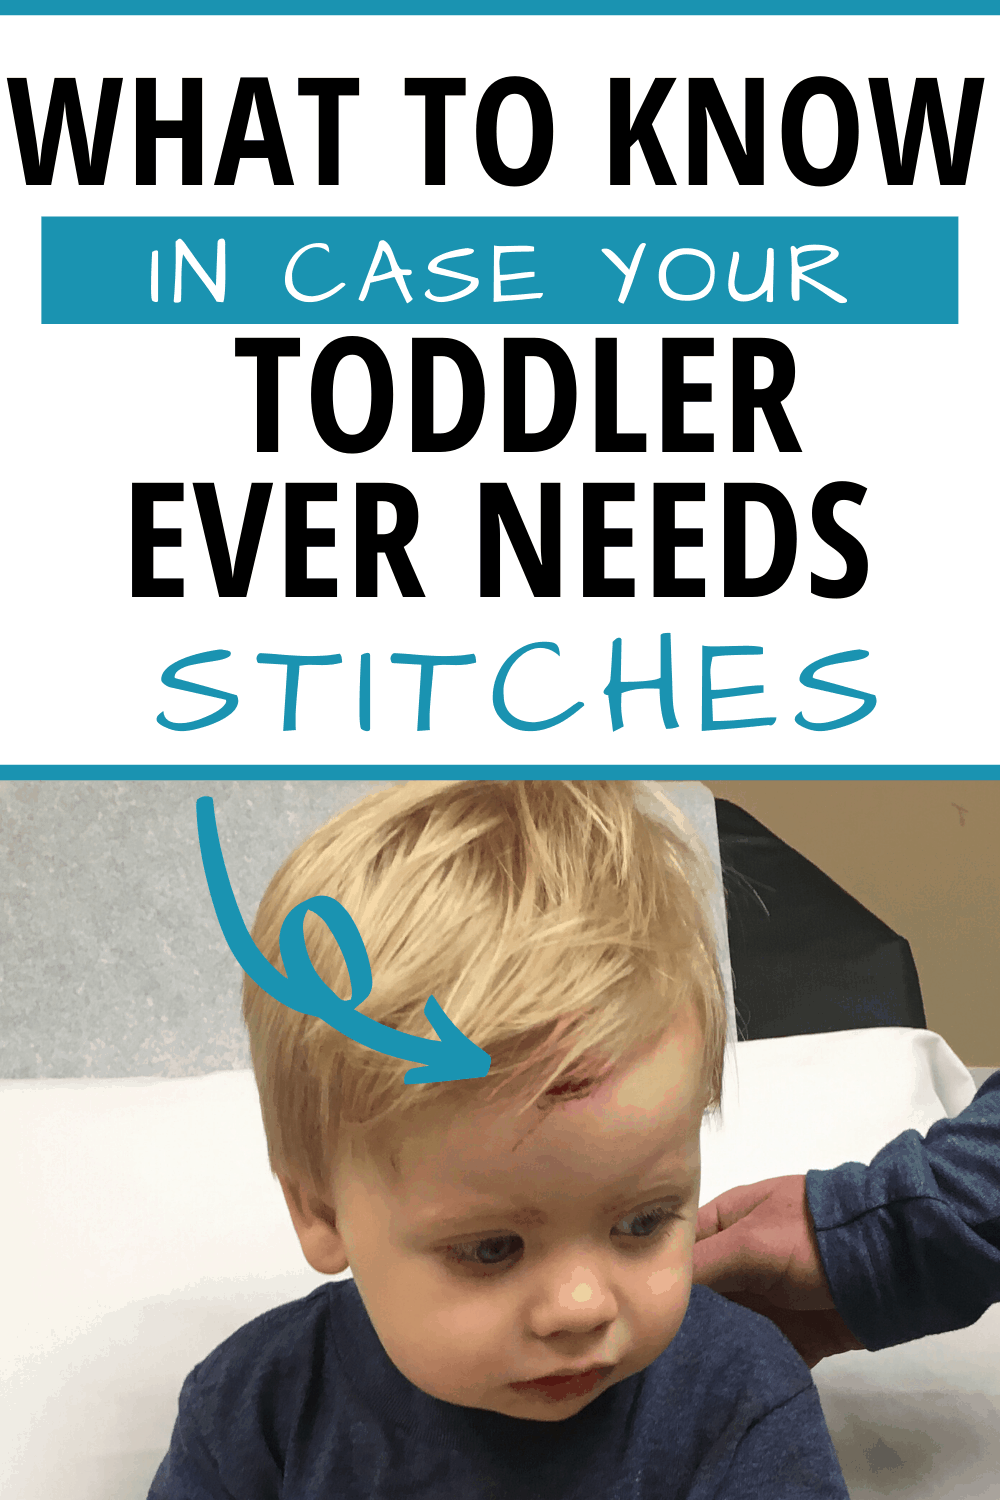 Head Injury Children: Quick Things to Know in the event your child has a fall that requires stitches! #injury #baby #toddler #child #stitches